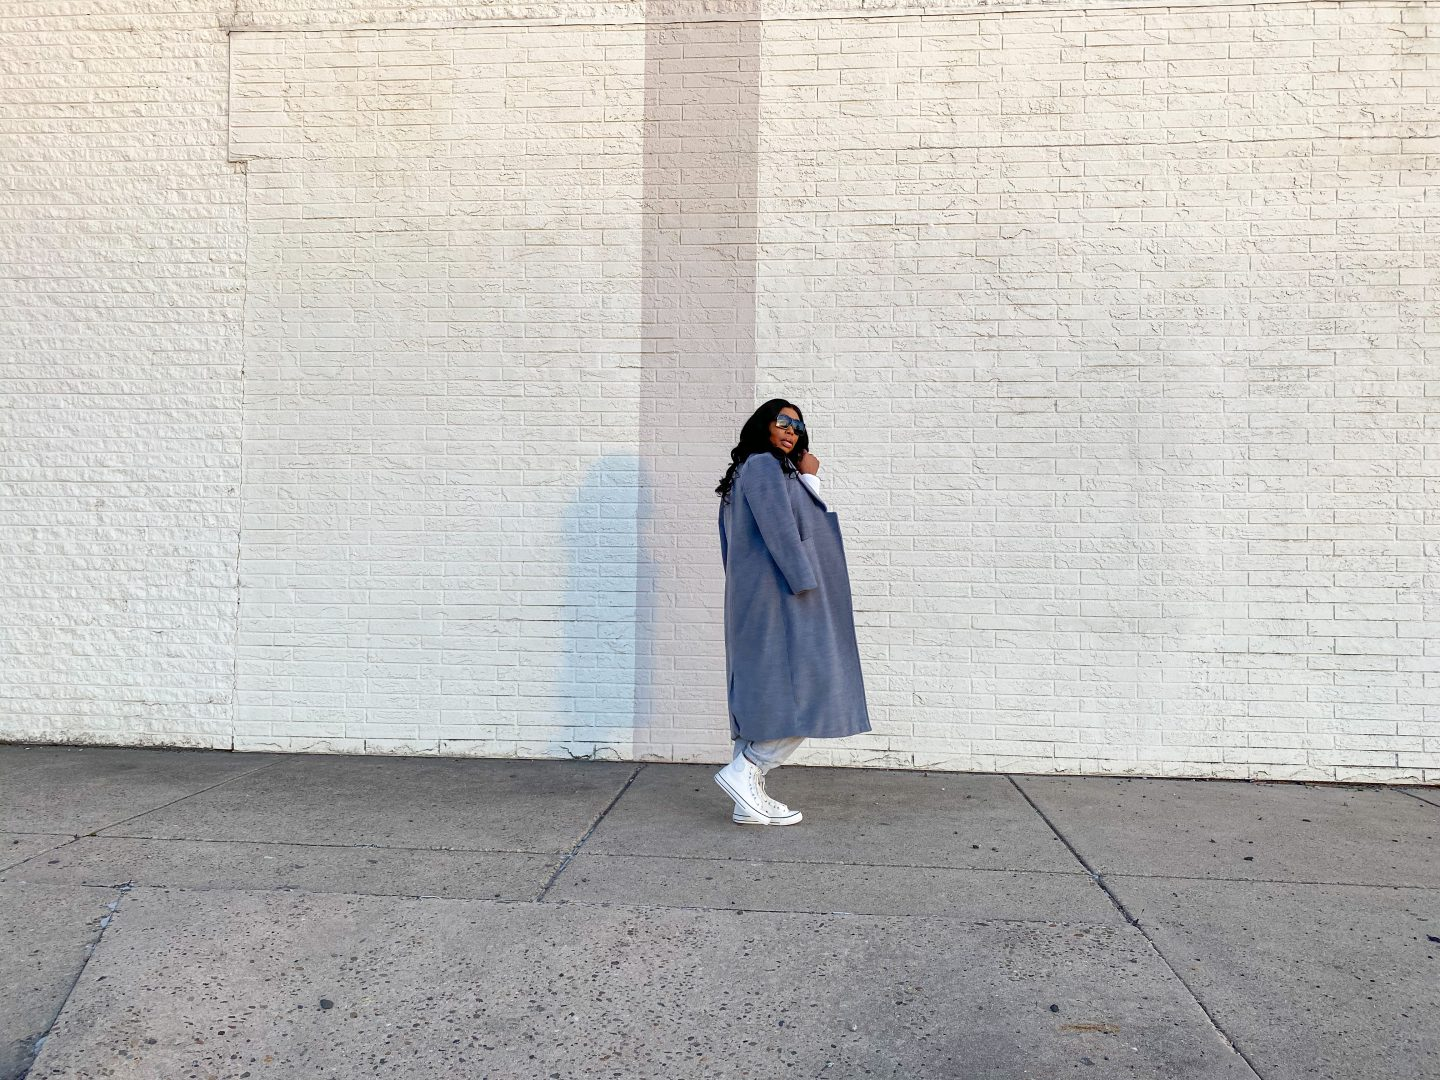 Black women wearing grey overcoat